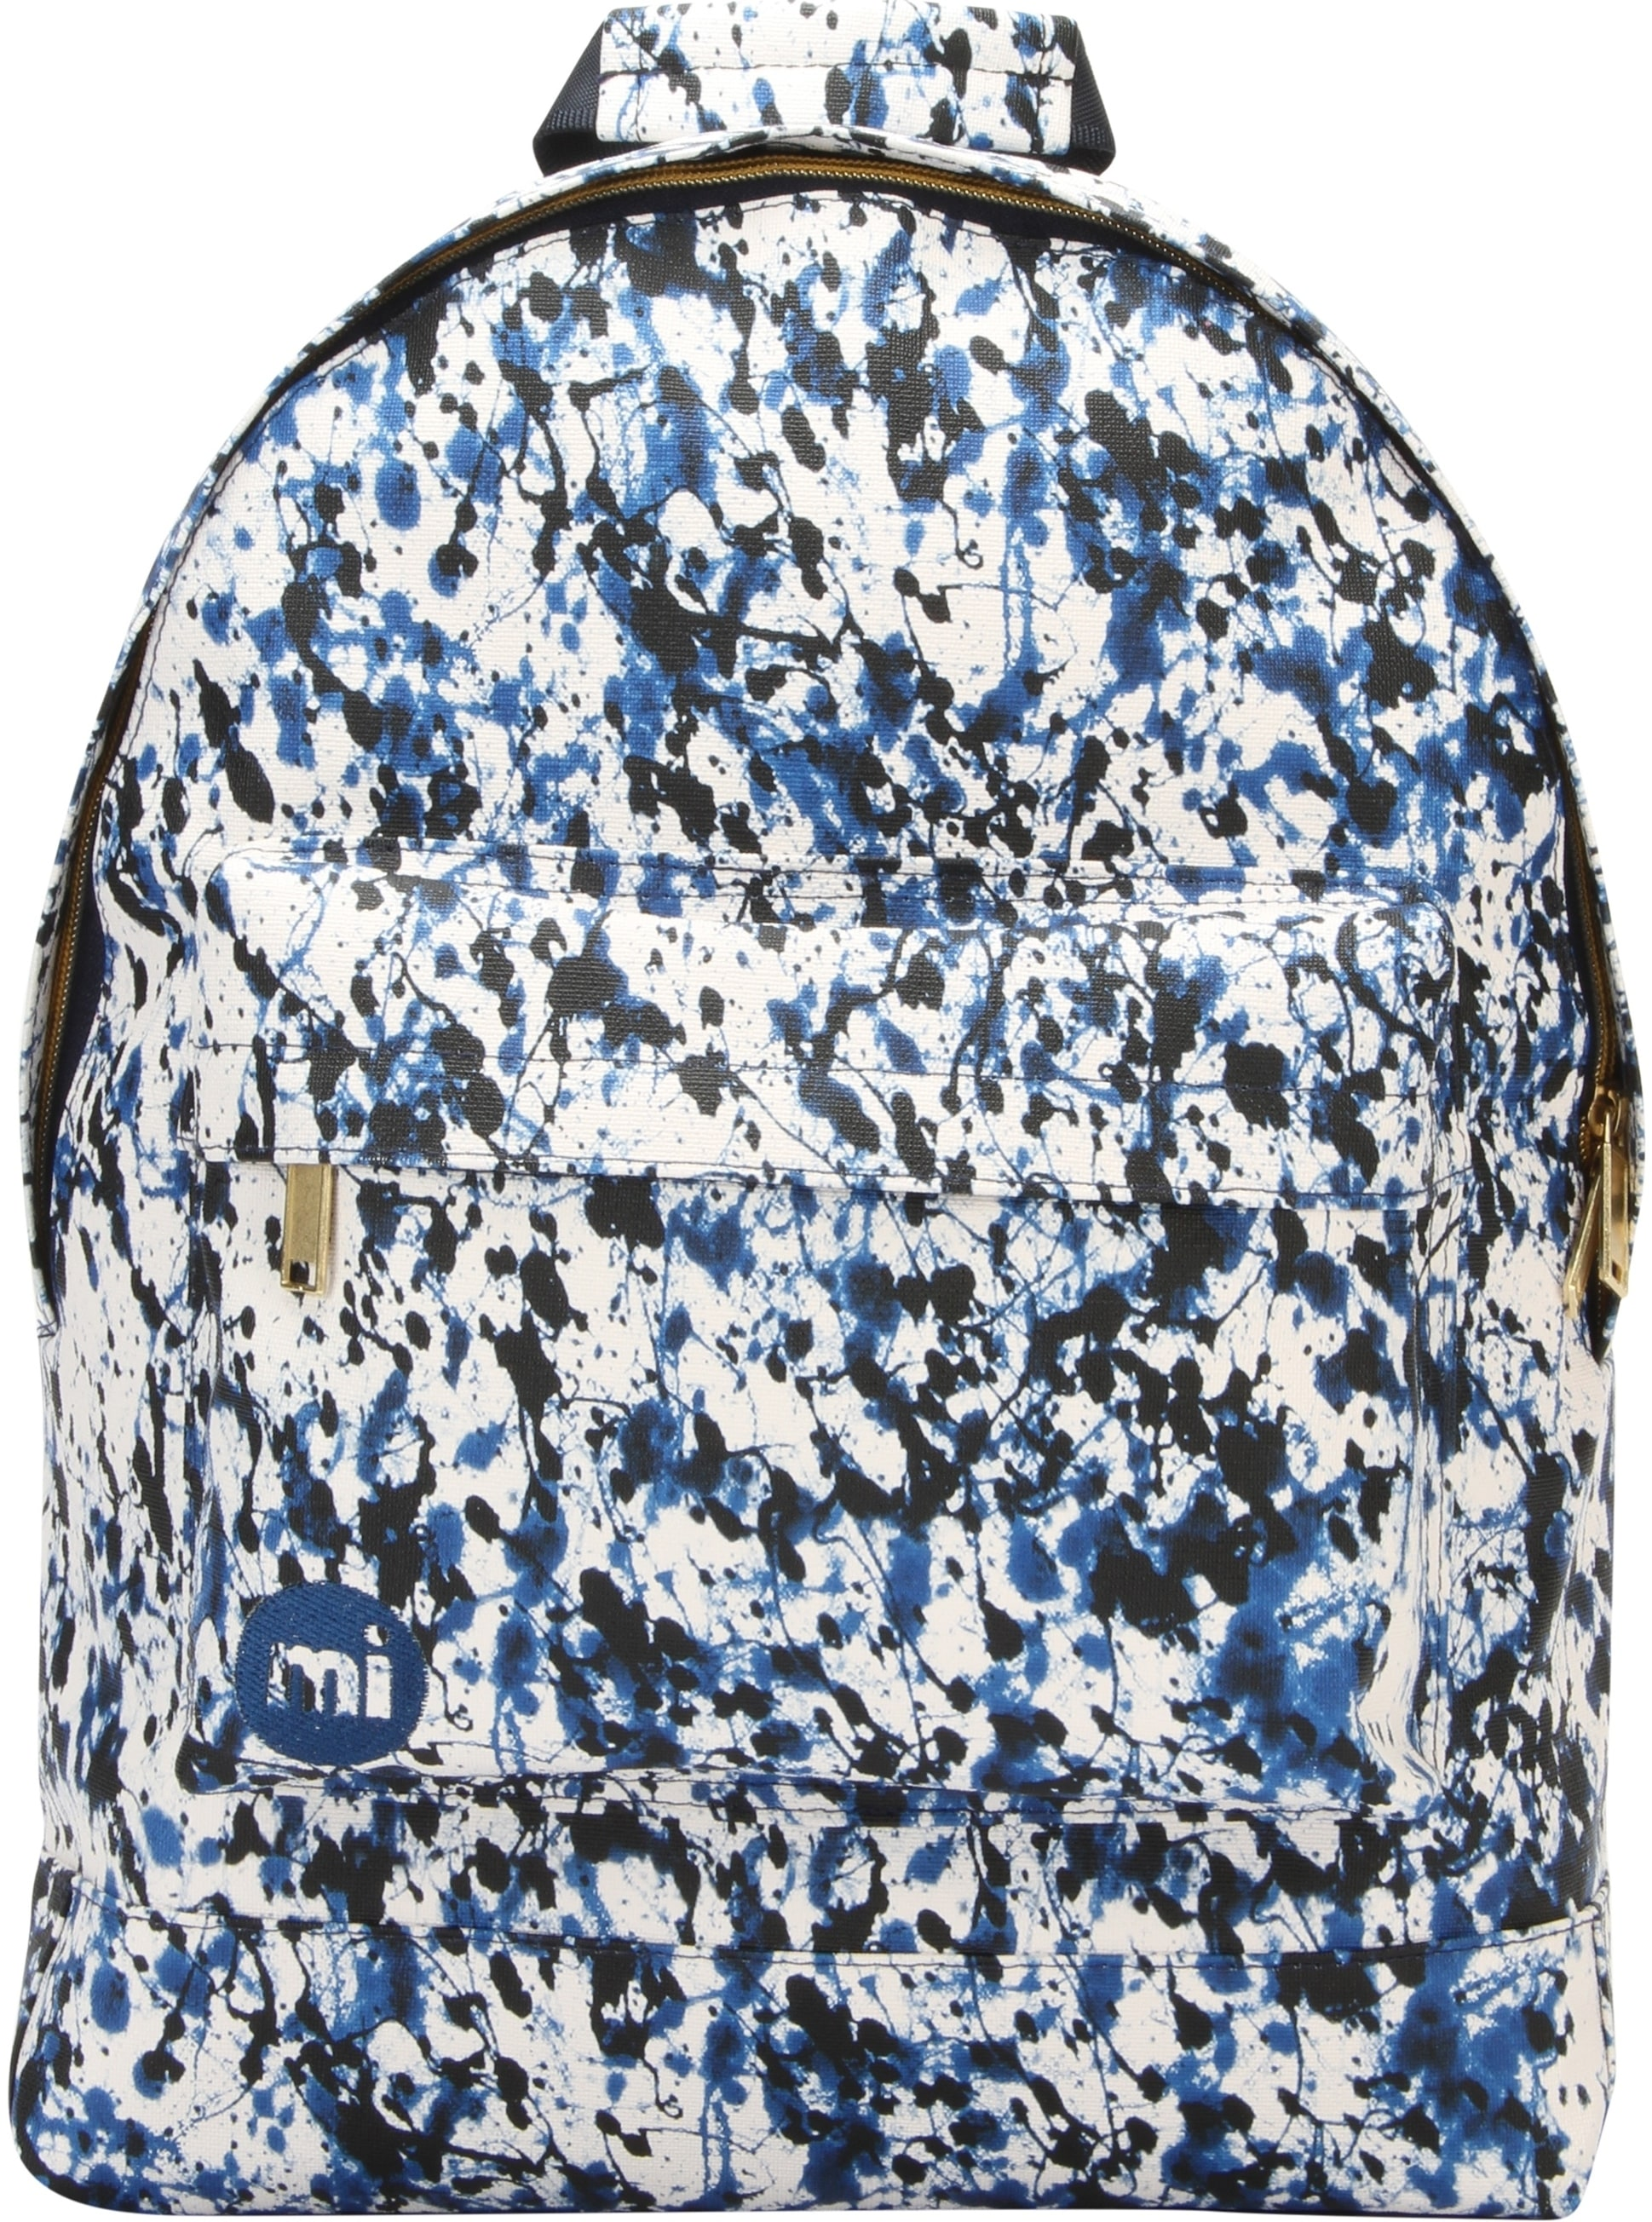 MiPac Paint Splash Backpack  BlueBlack